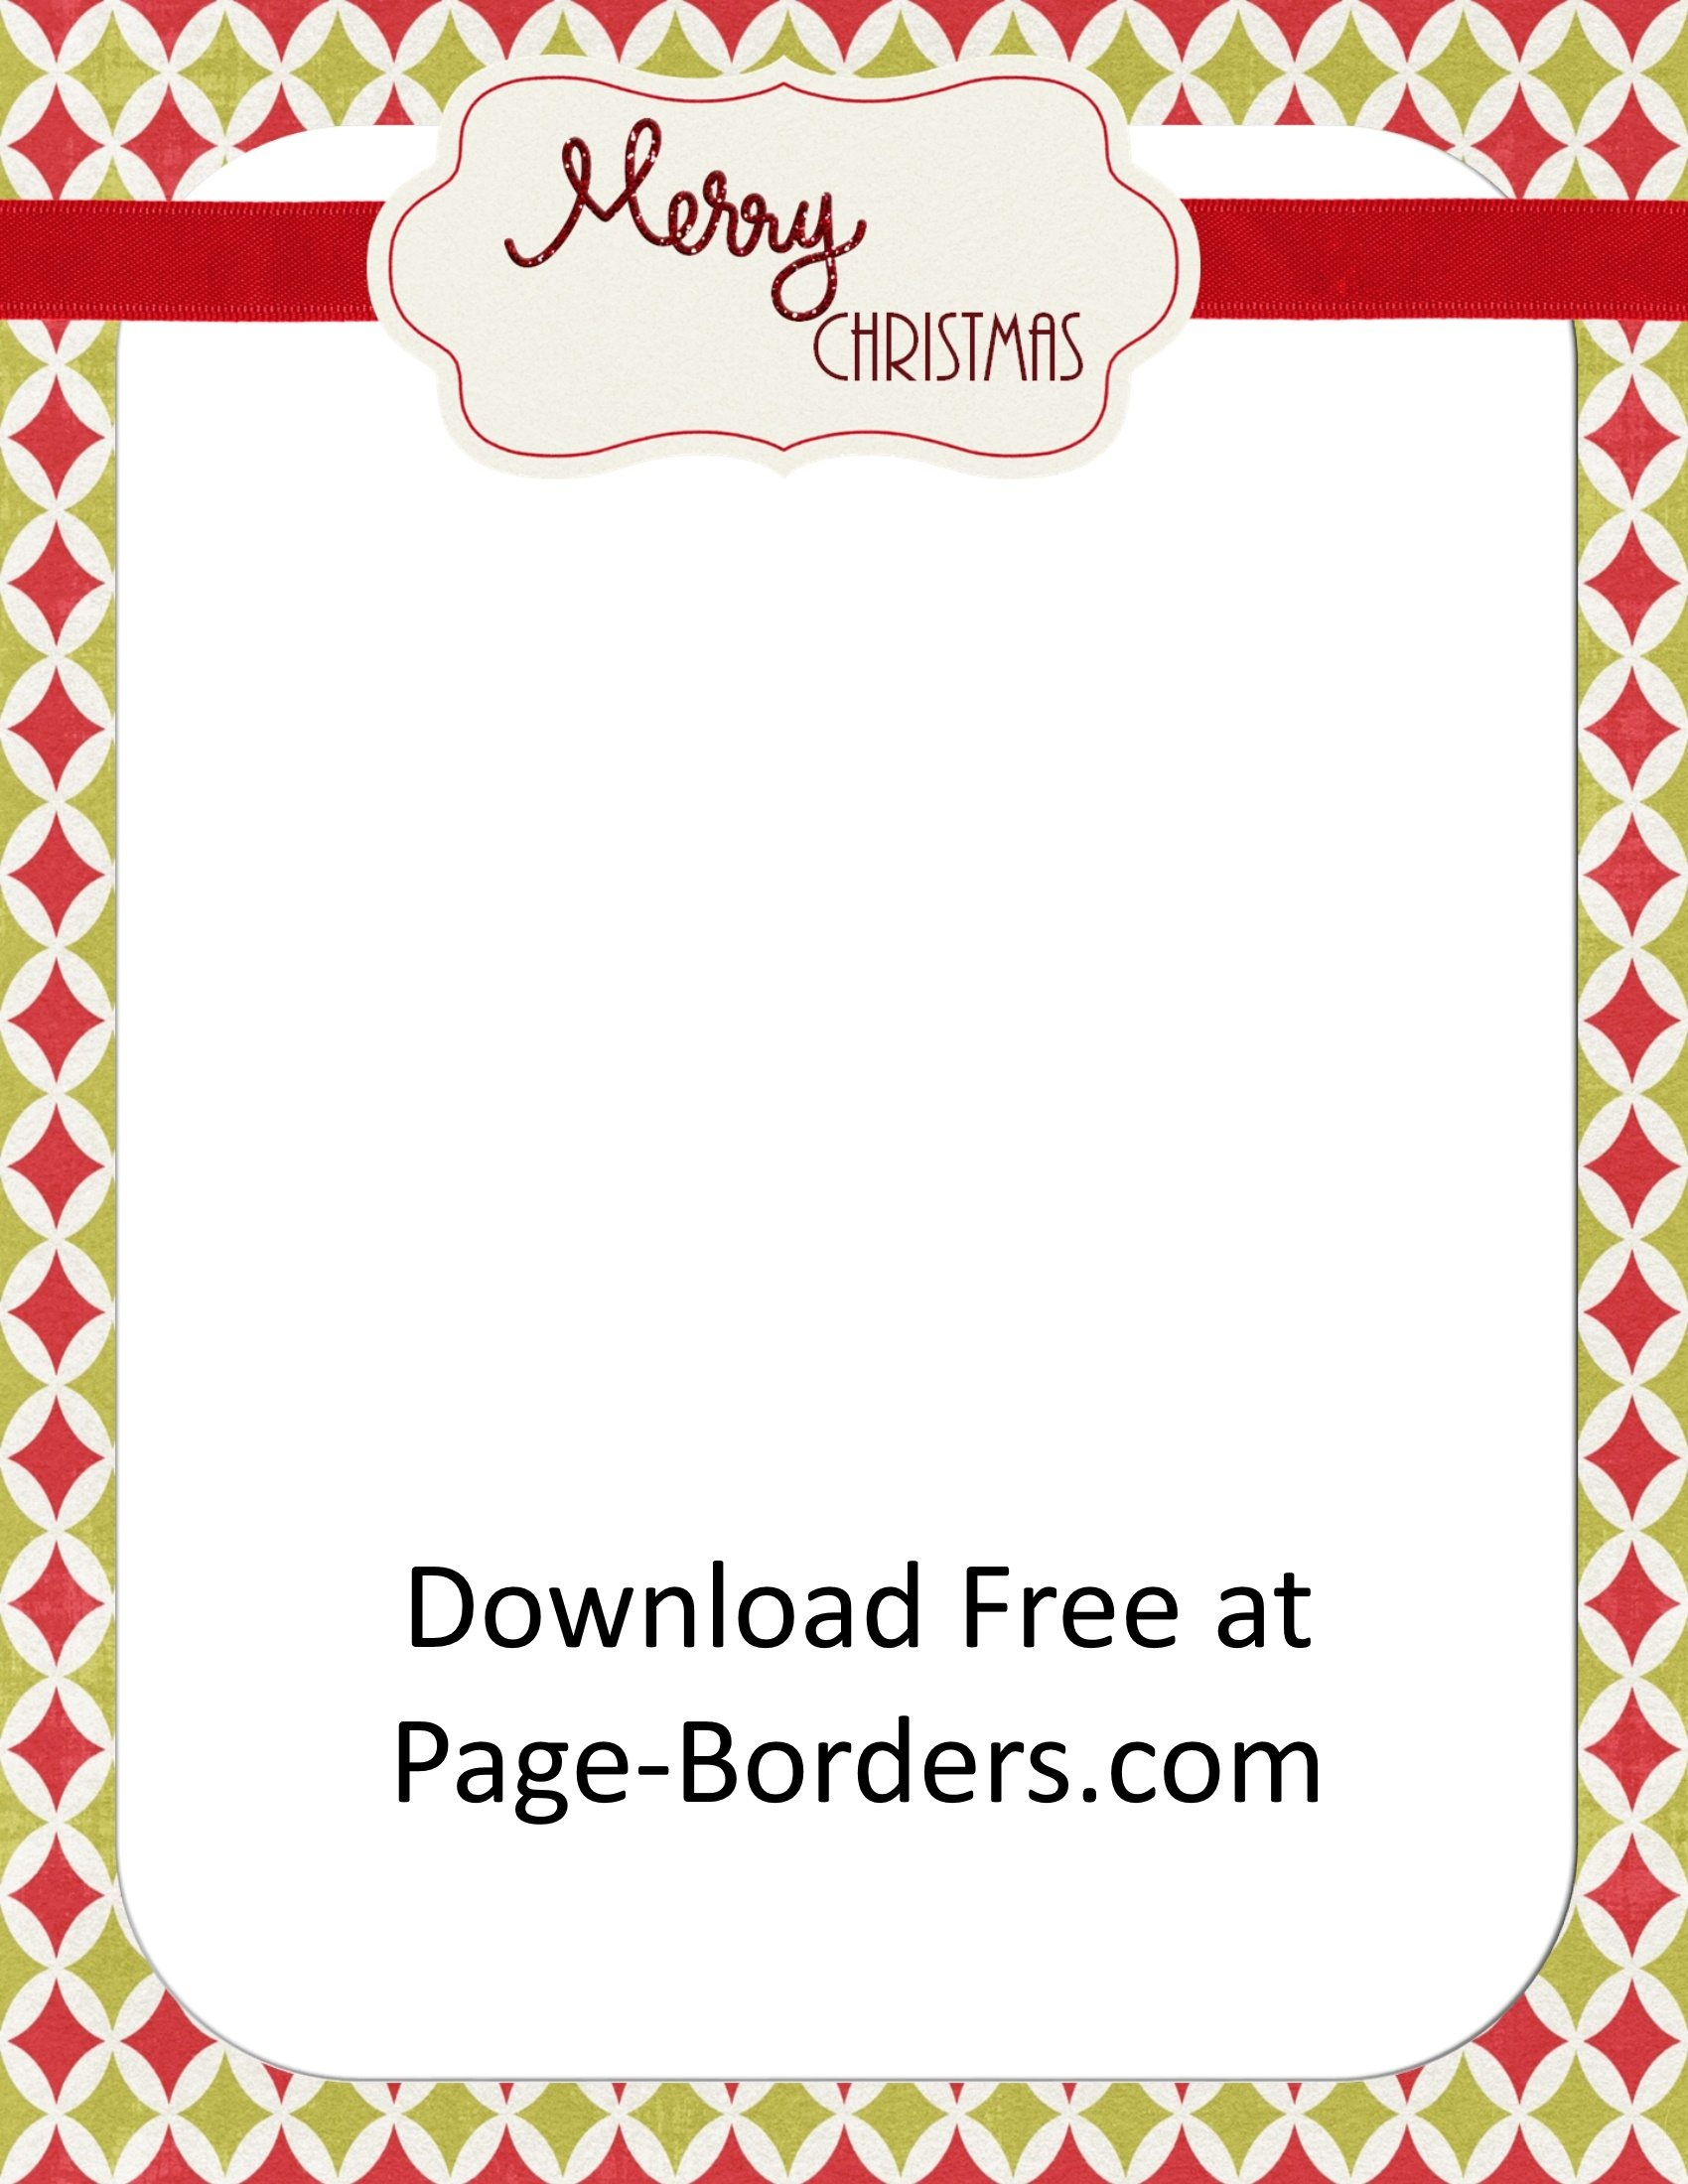 Free Christmas Border | Customize Online | Personal & Commercial Use - Free Printable Christmas Borders